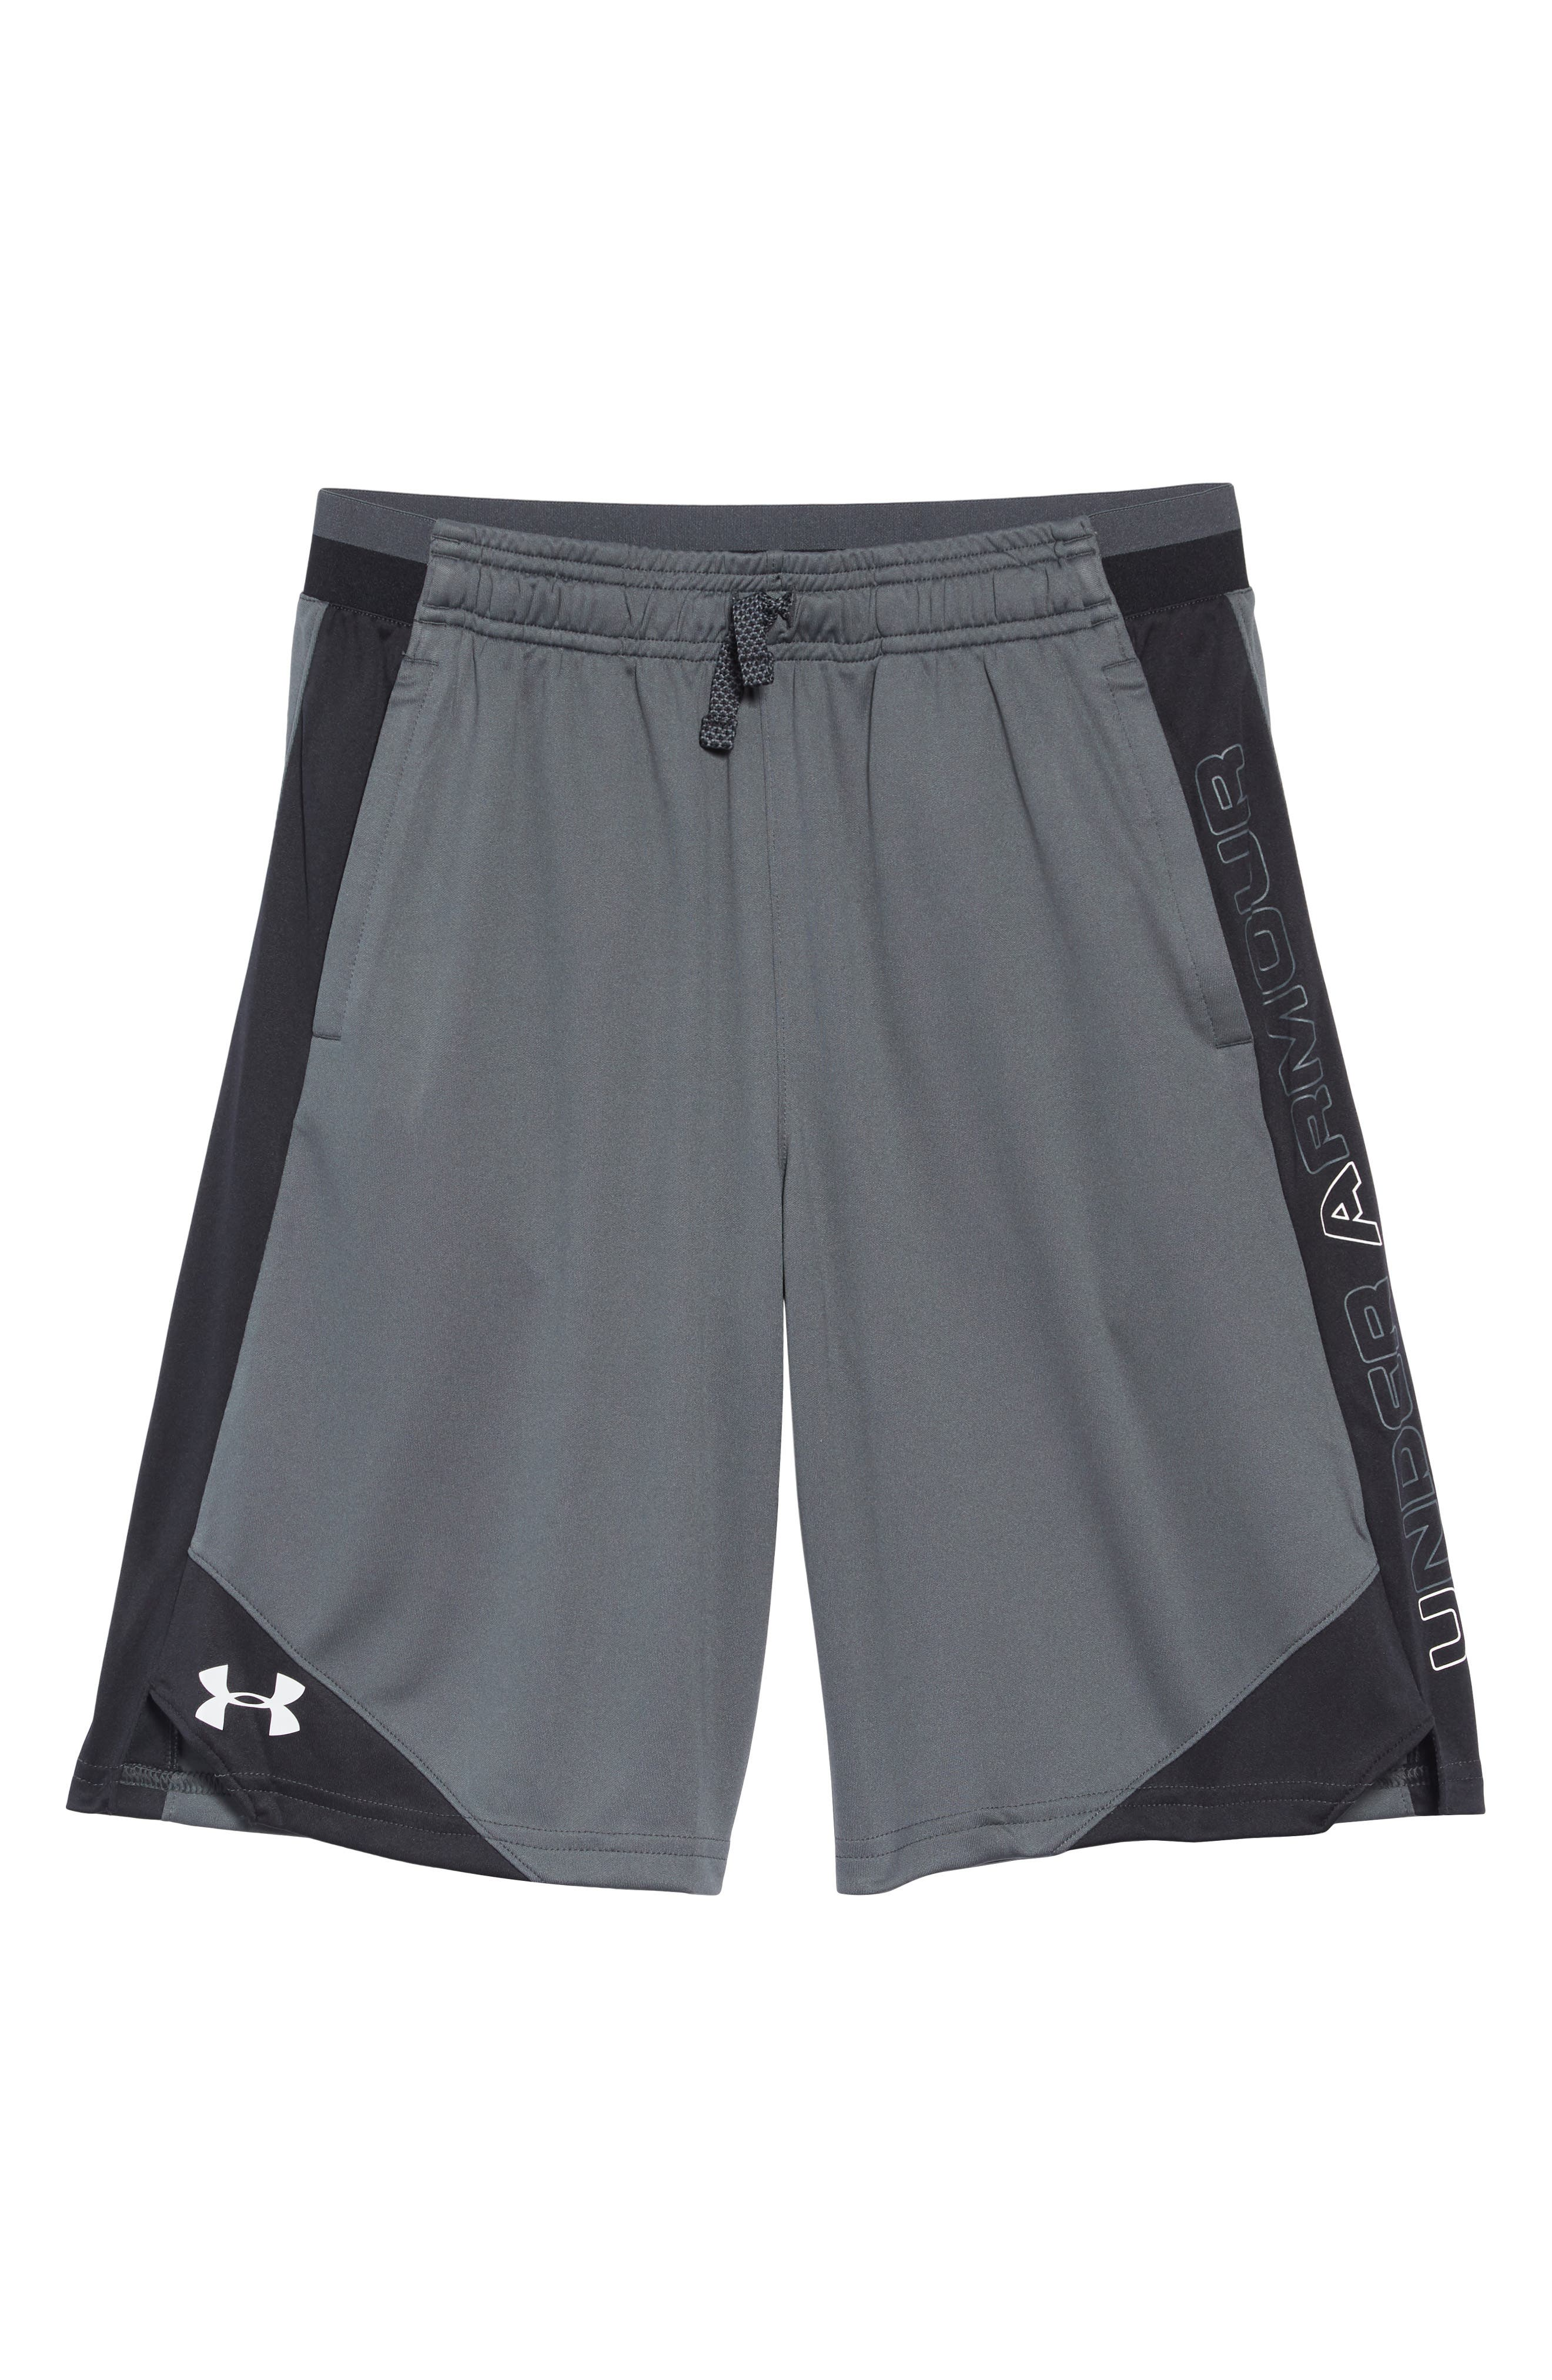 UNDER ARMOUR Stunt 2 Shorts, Main, color, PITCH GRAY/ WHITE